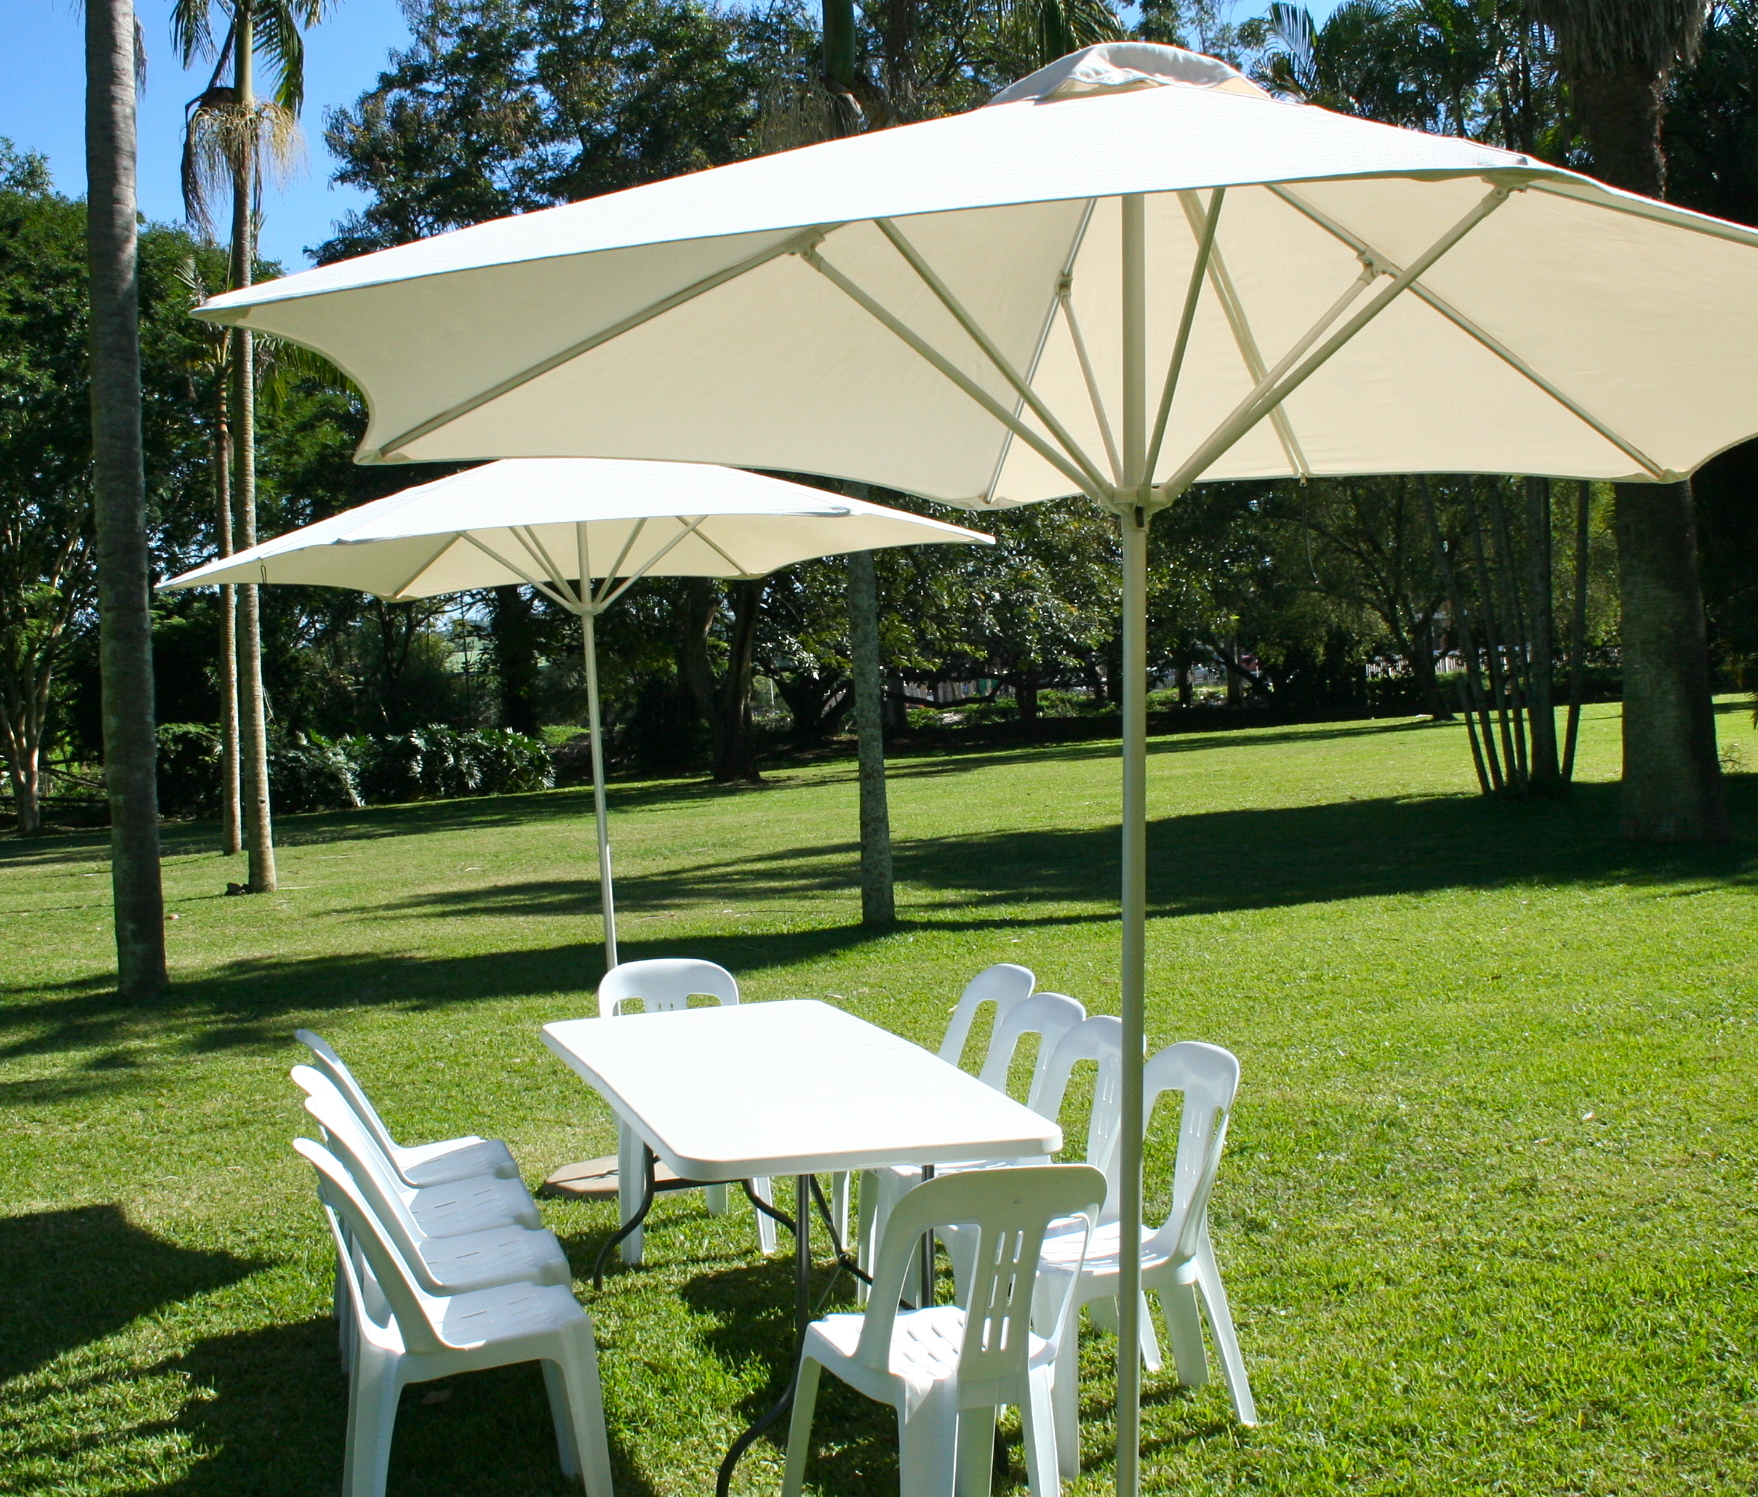 Three Uses to which you can put a Garden Umbrella to